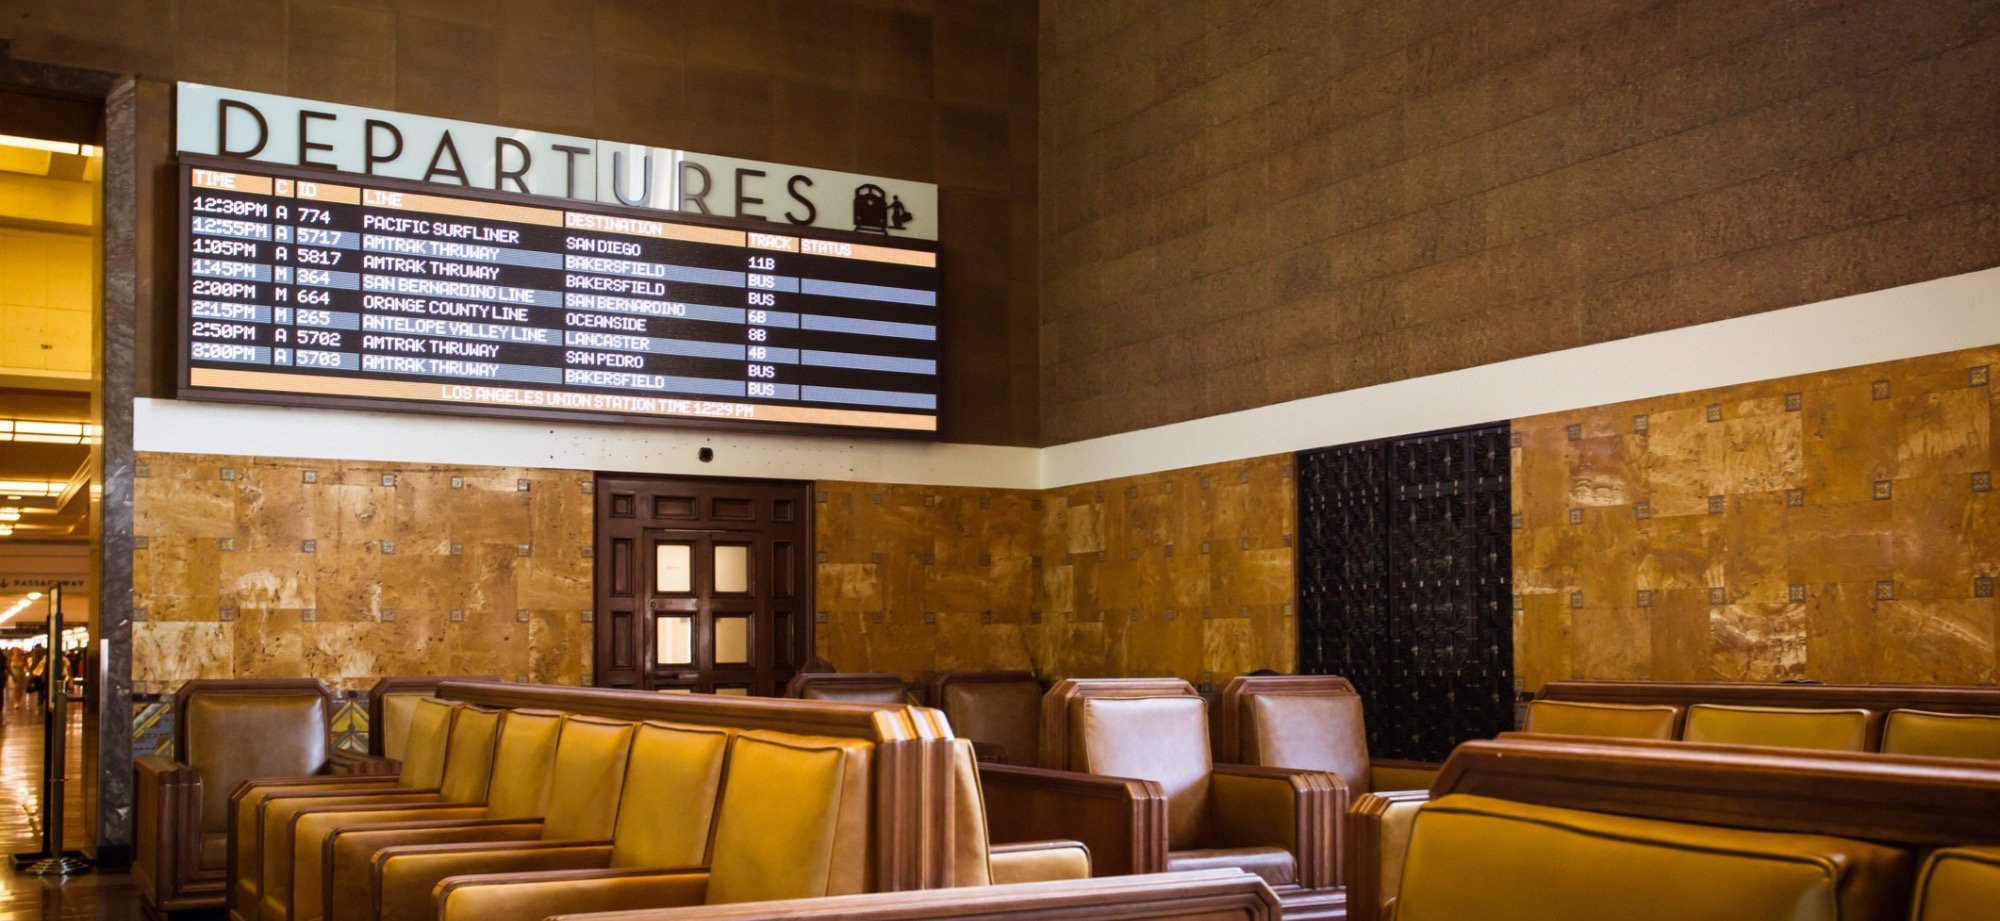 The departure board in the waiting area.